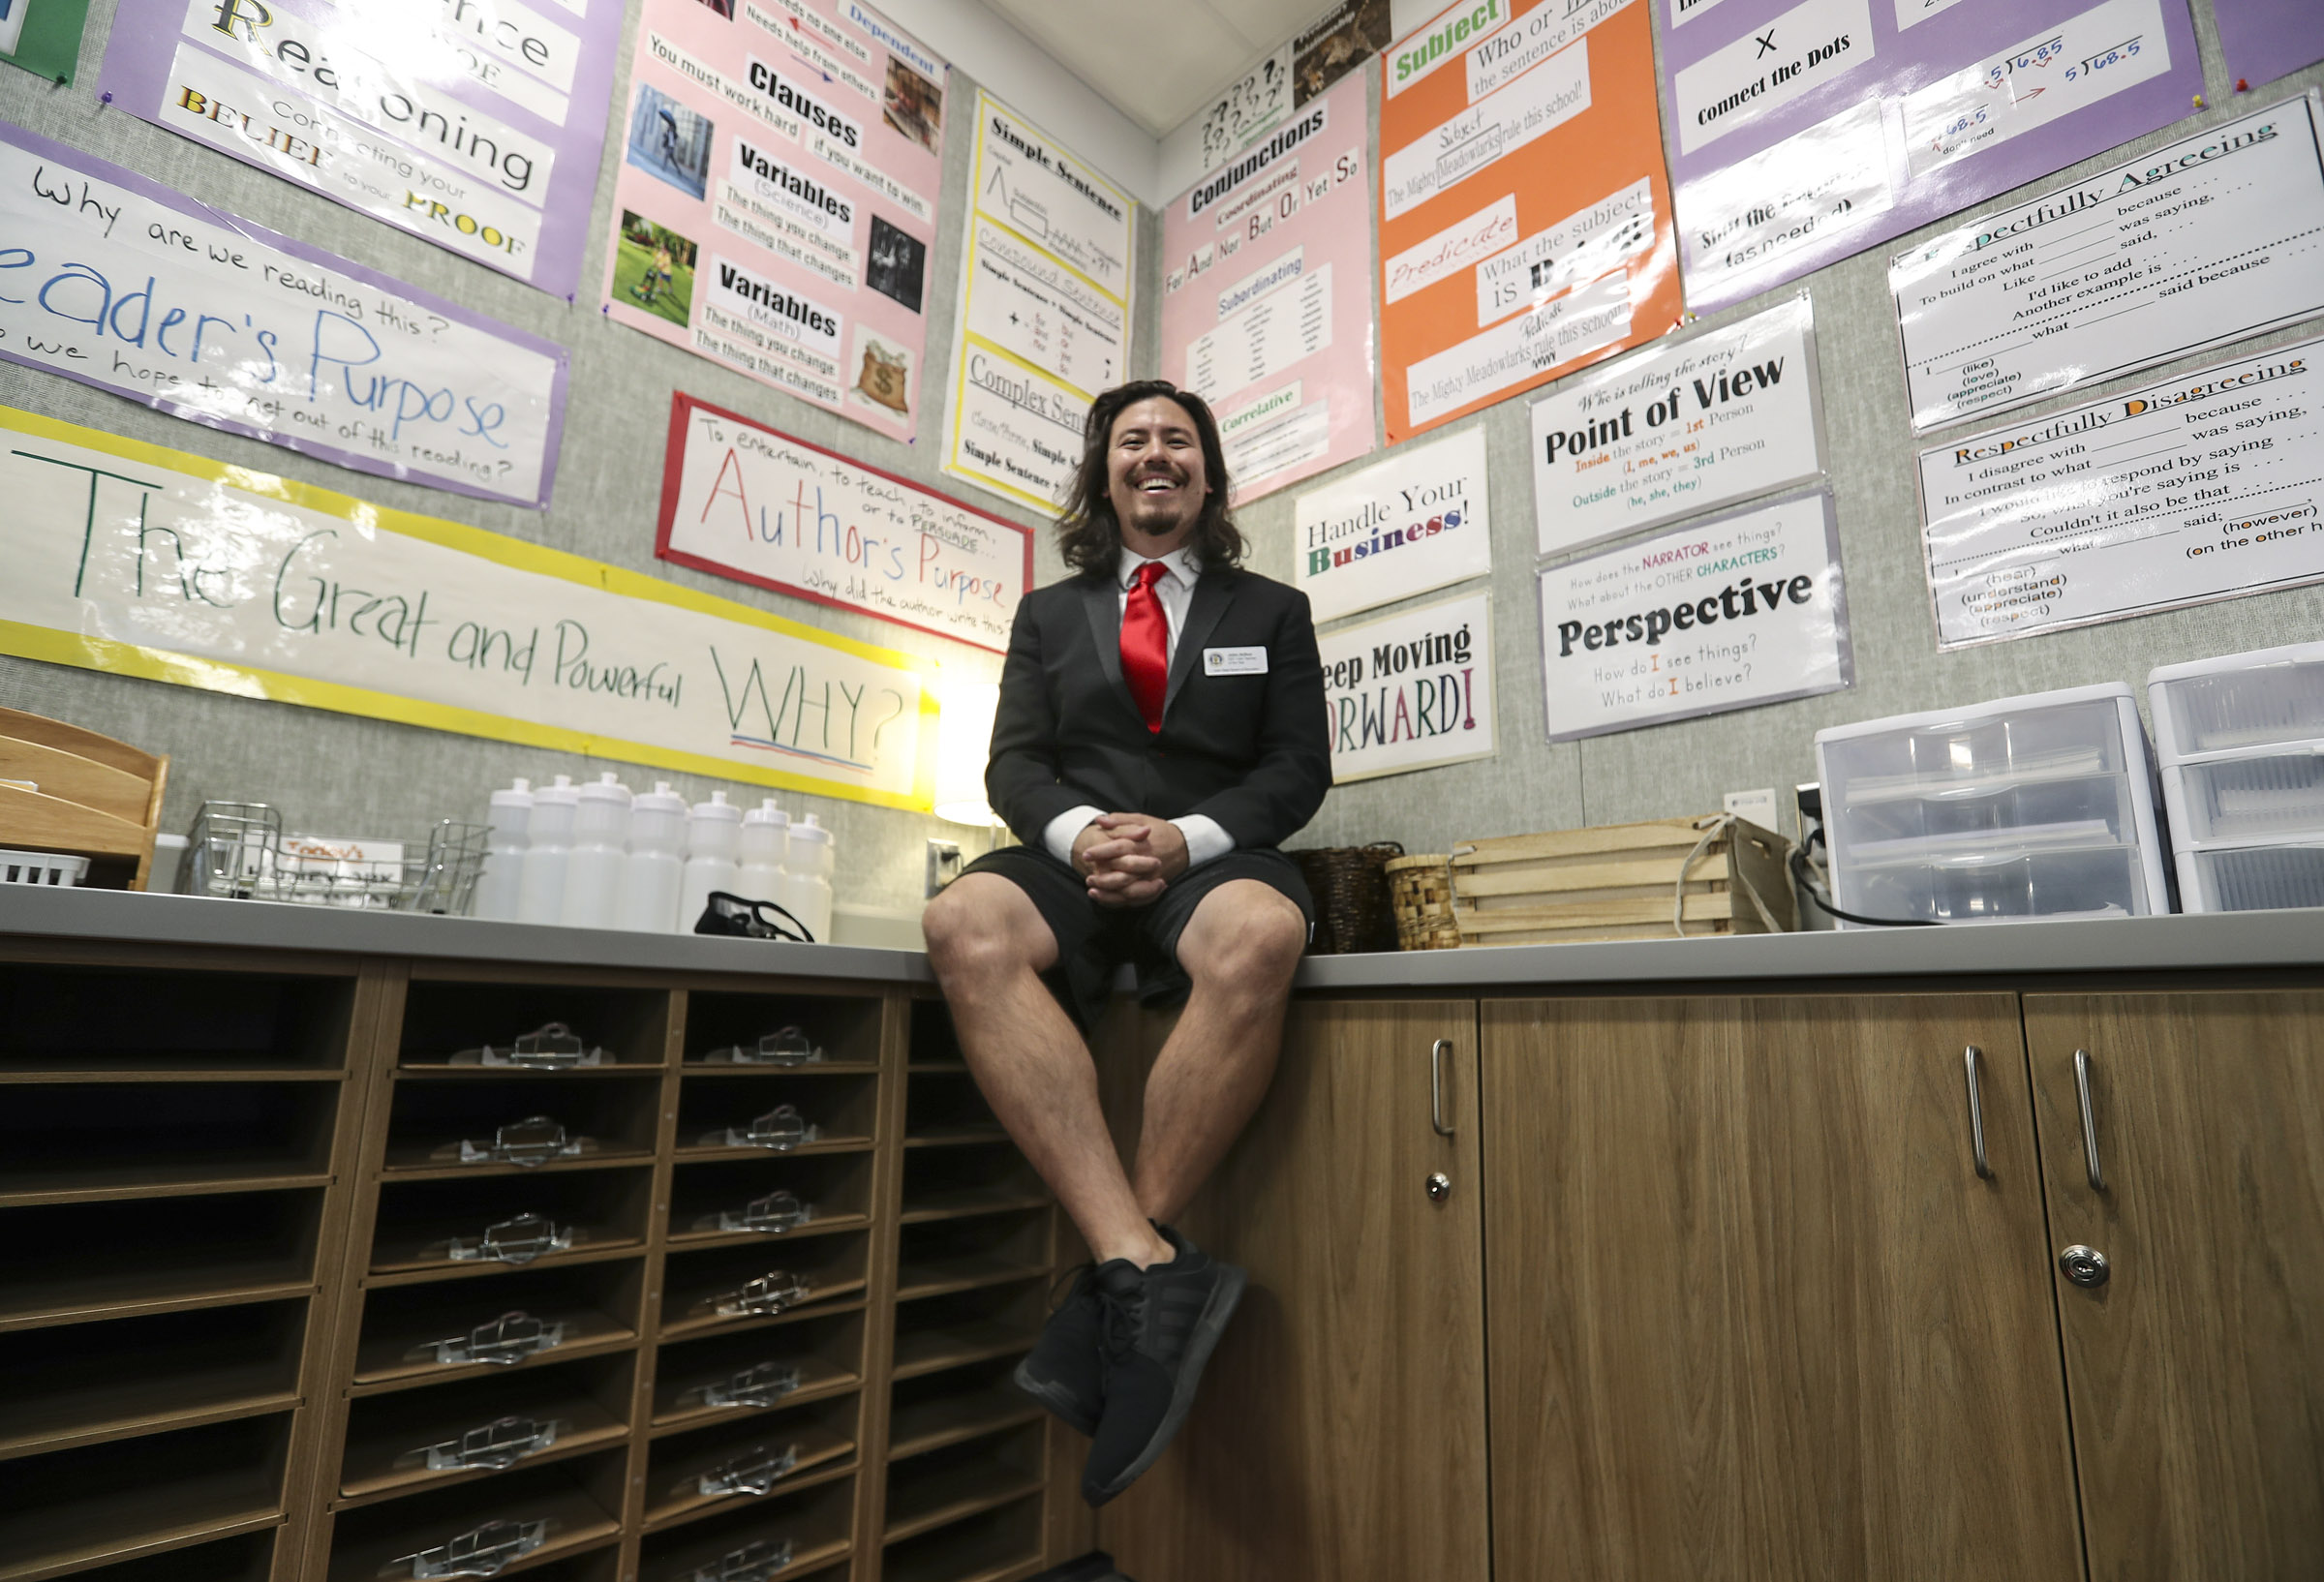 John Arthur, Utah's Teacher of the Year, wears a special punk tuxedo jacket and gym shorts as he poses for a photo in his sixth grade classroom at Meadowlark Elementary School in Salt Lake City after learning of the award on Thursday, Oct. 1, 2020.